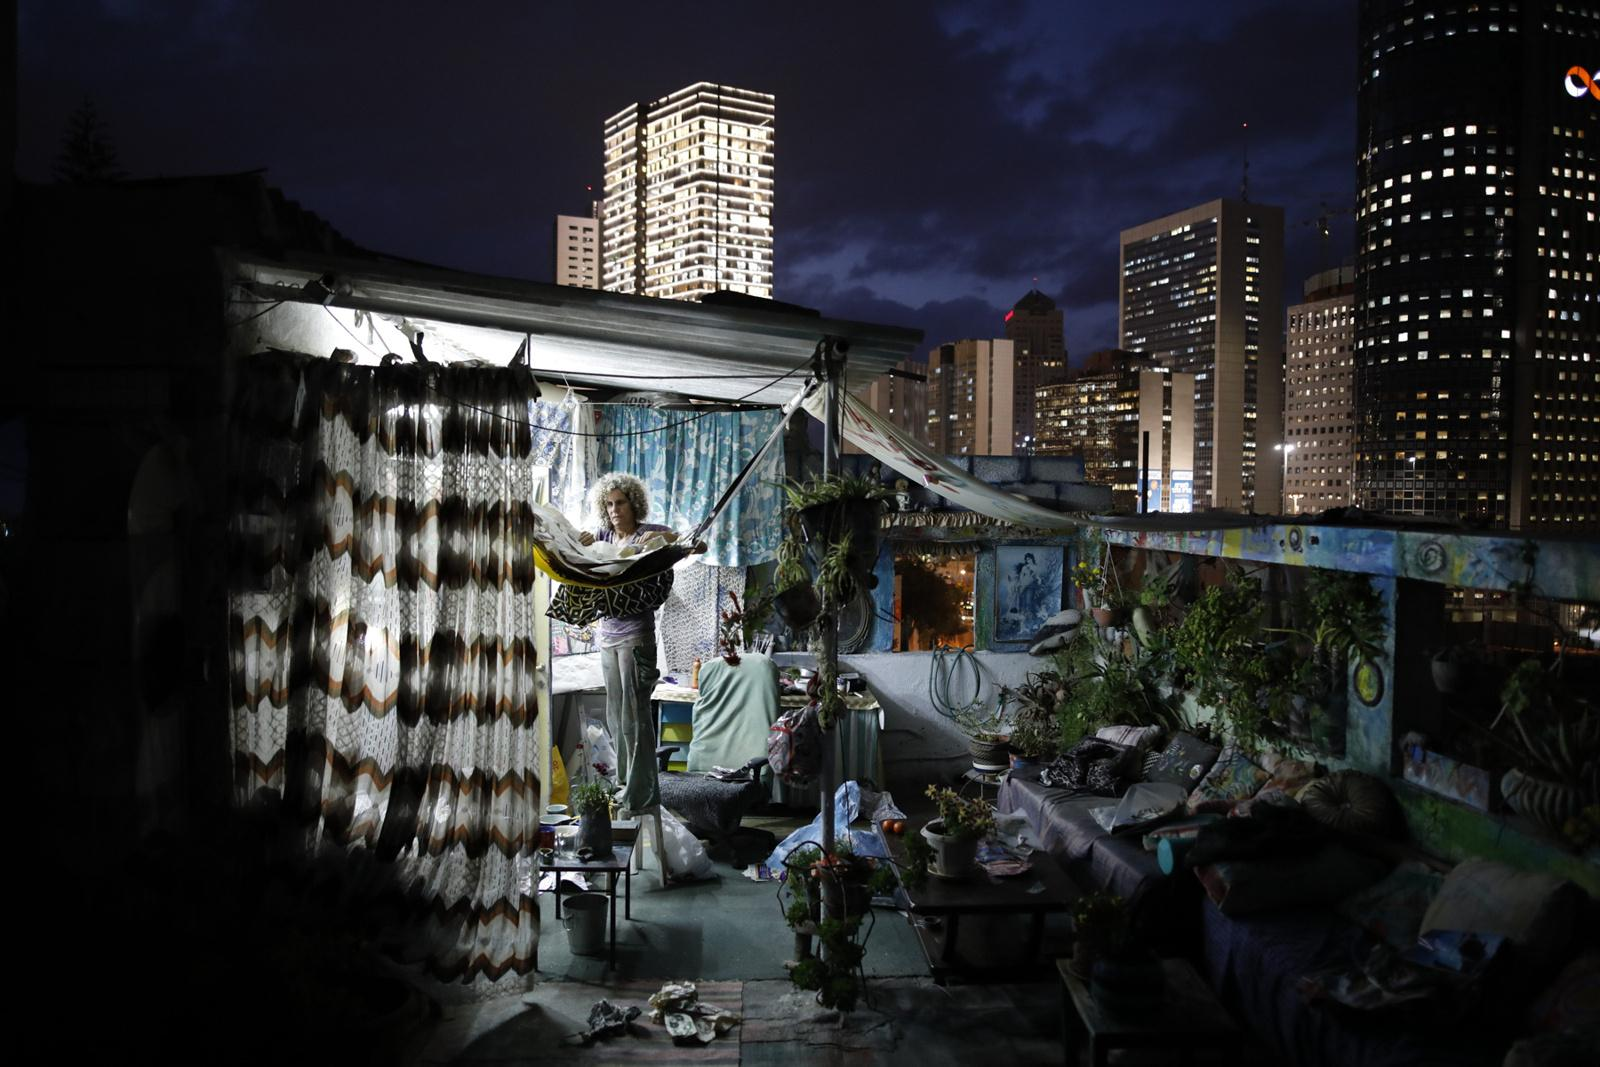 Ana Ashury, a mixed-media artist, stores away her artwork, on her rooftop in Ramat Gan, a suburb of Tel Aviv, November 19, 2017, Israel. She has been living in her place for the last 10 years and has recently begun to work on collages on her rooftop while she works as a video artist most of the time.